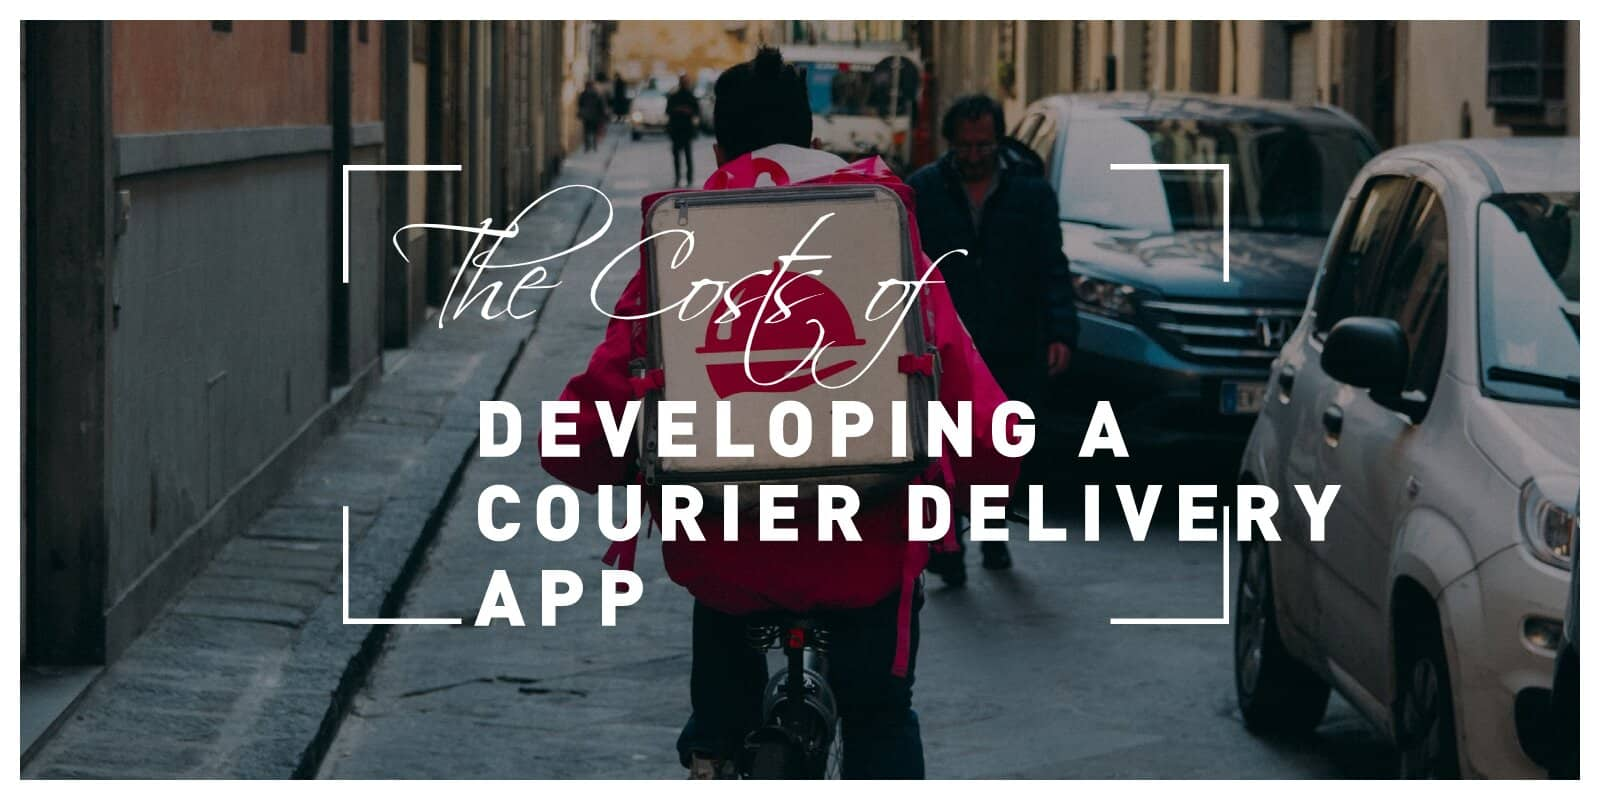 The Costs of Developing a Courier Delivery App